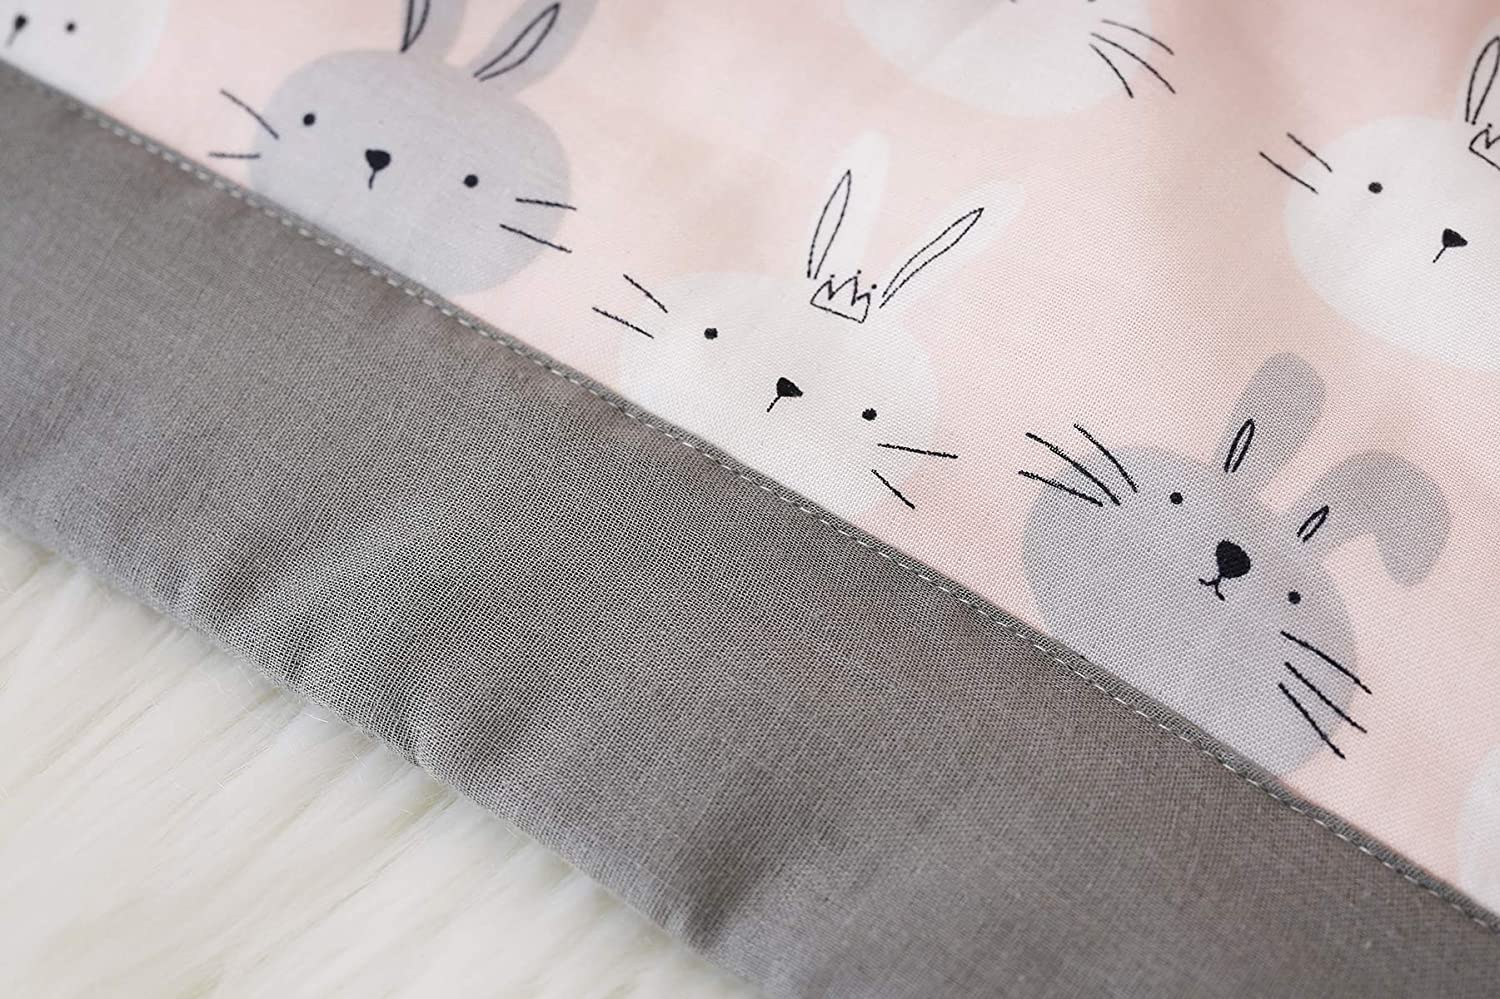 1PC,#5 White Grey Black Cartoon Bunny Pattern Omelas Baby Toddler Animal Rubbit Nursery Muslin Organic Cotton Pillowcase Pink Allergy-Free Soft Daycare Infants Crib Pillow Protector Cover 13x18in